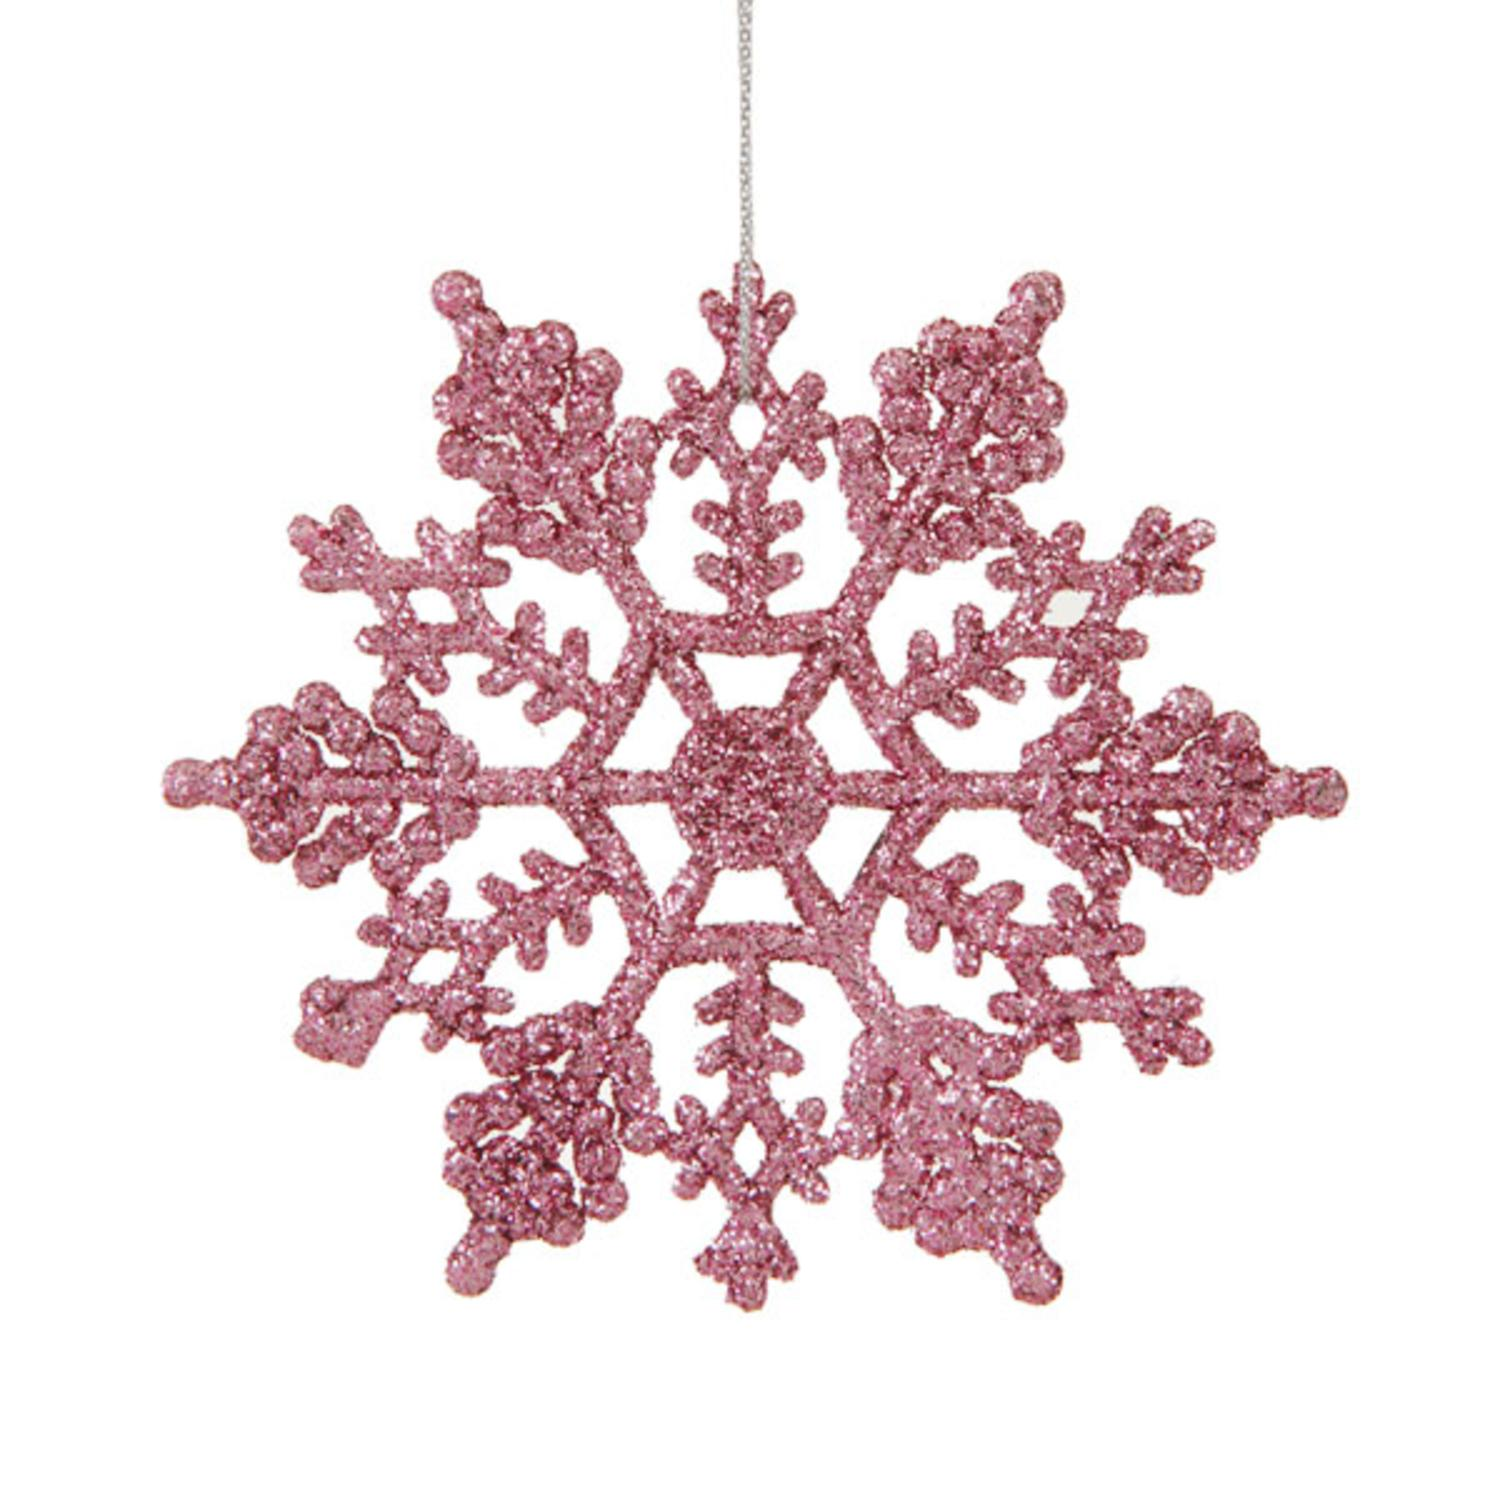 Club Pack of 24 Mauve Pink Glitter Snowflake Christmas Ornaments 4""